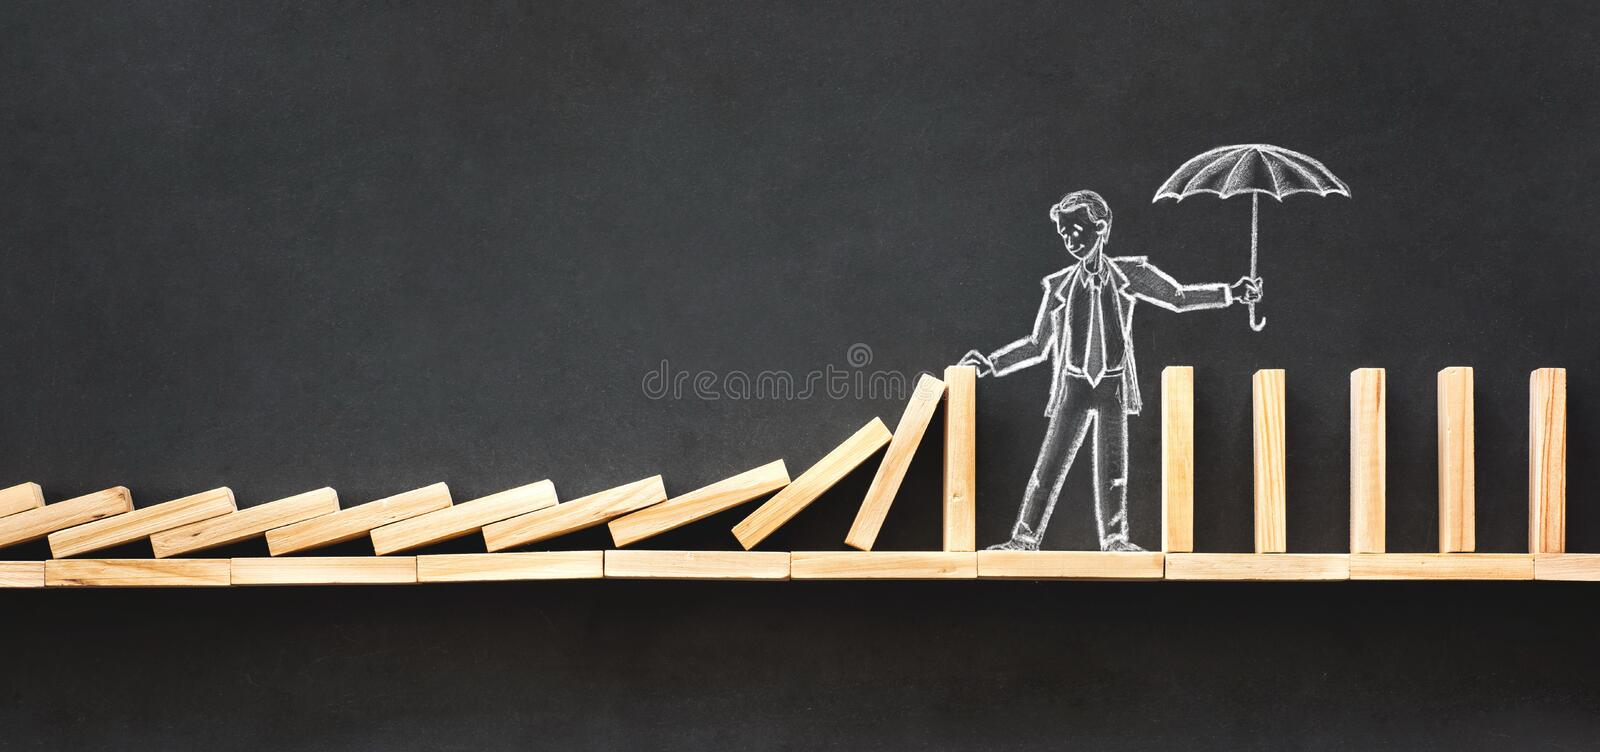 Career Planning and Business Challenge Concept royalty free stock photography